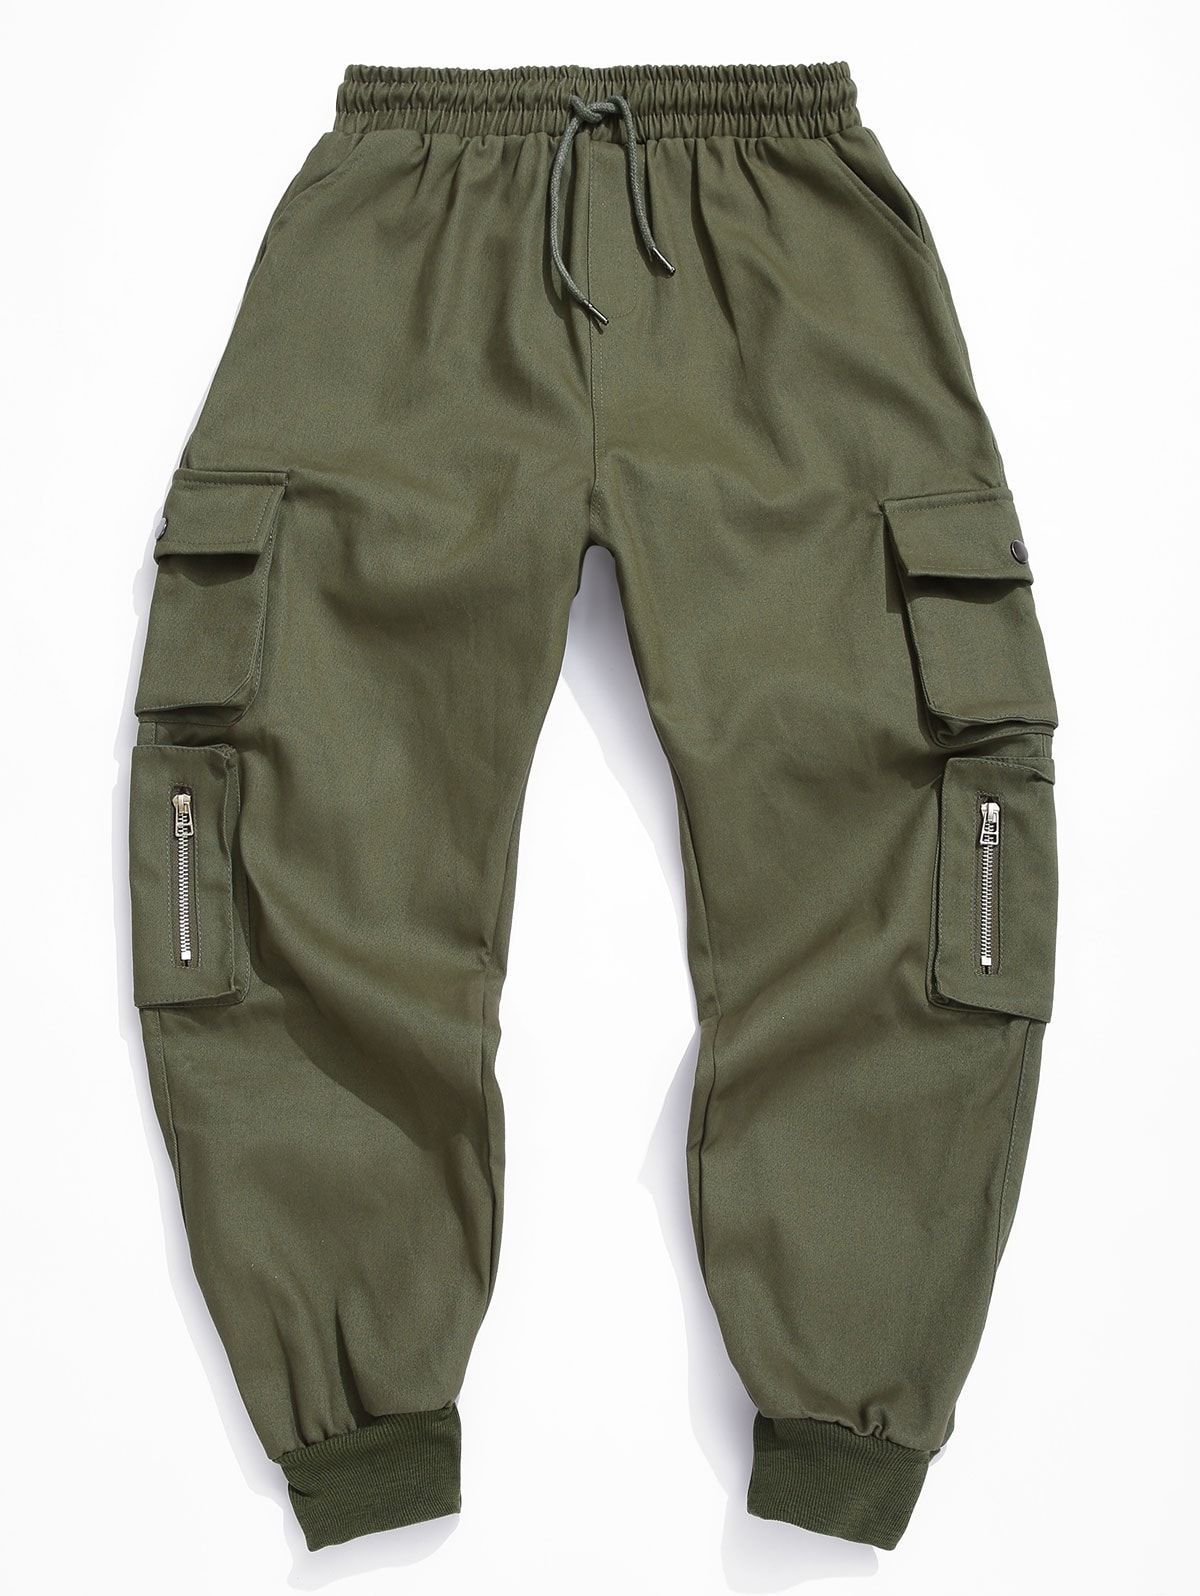 Shorts Solid color Men/'s Trousers Cropped Cargo Army Drawstring Pockets Casual